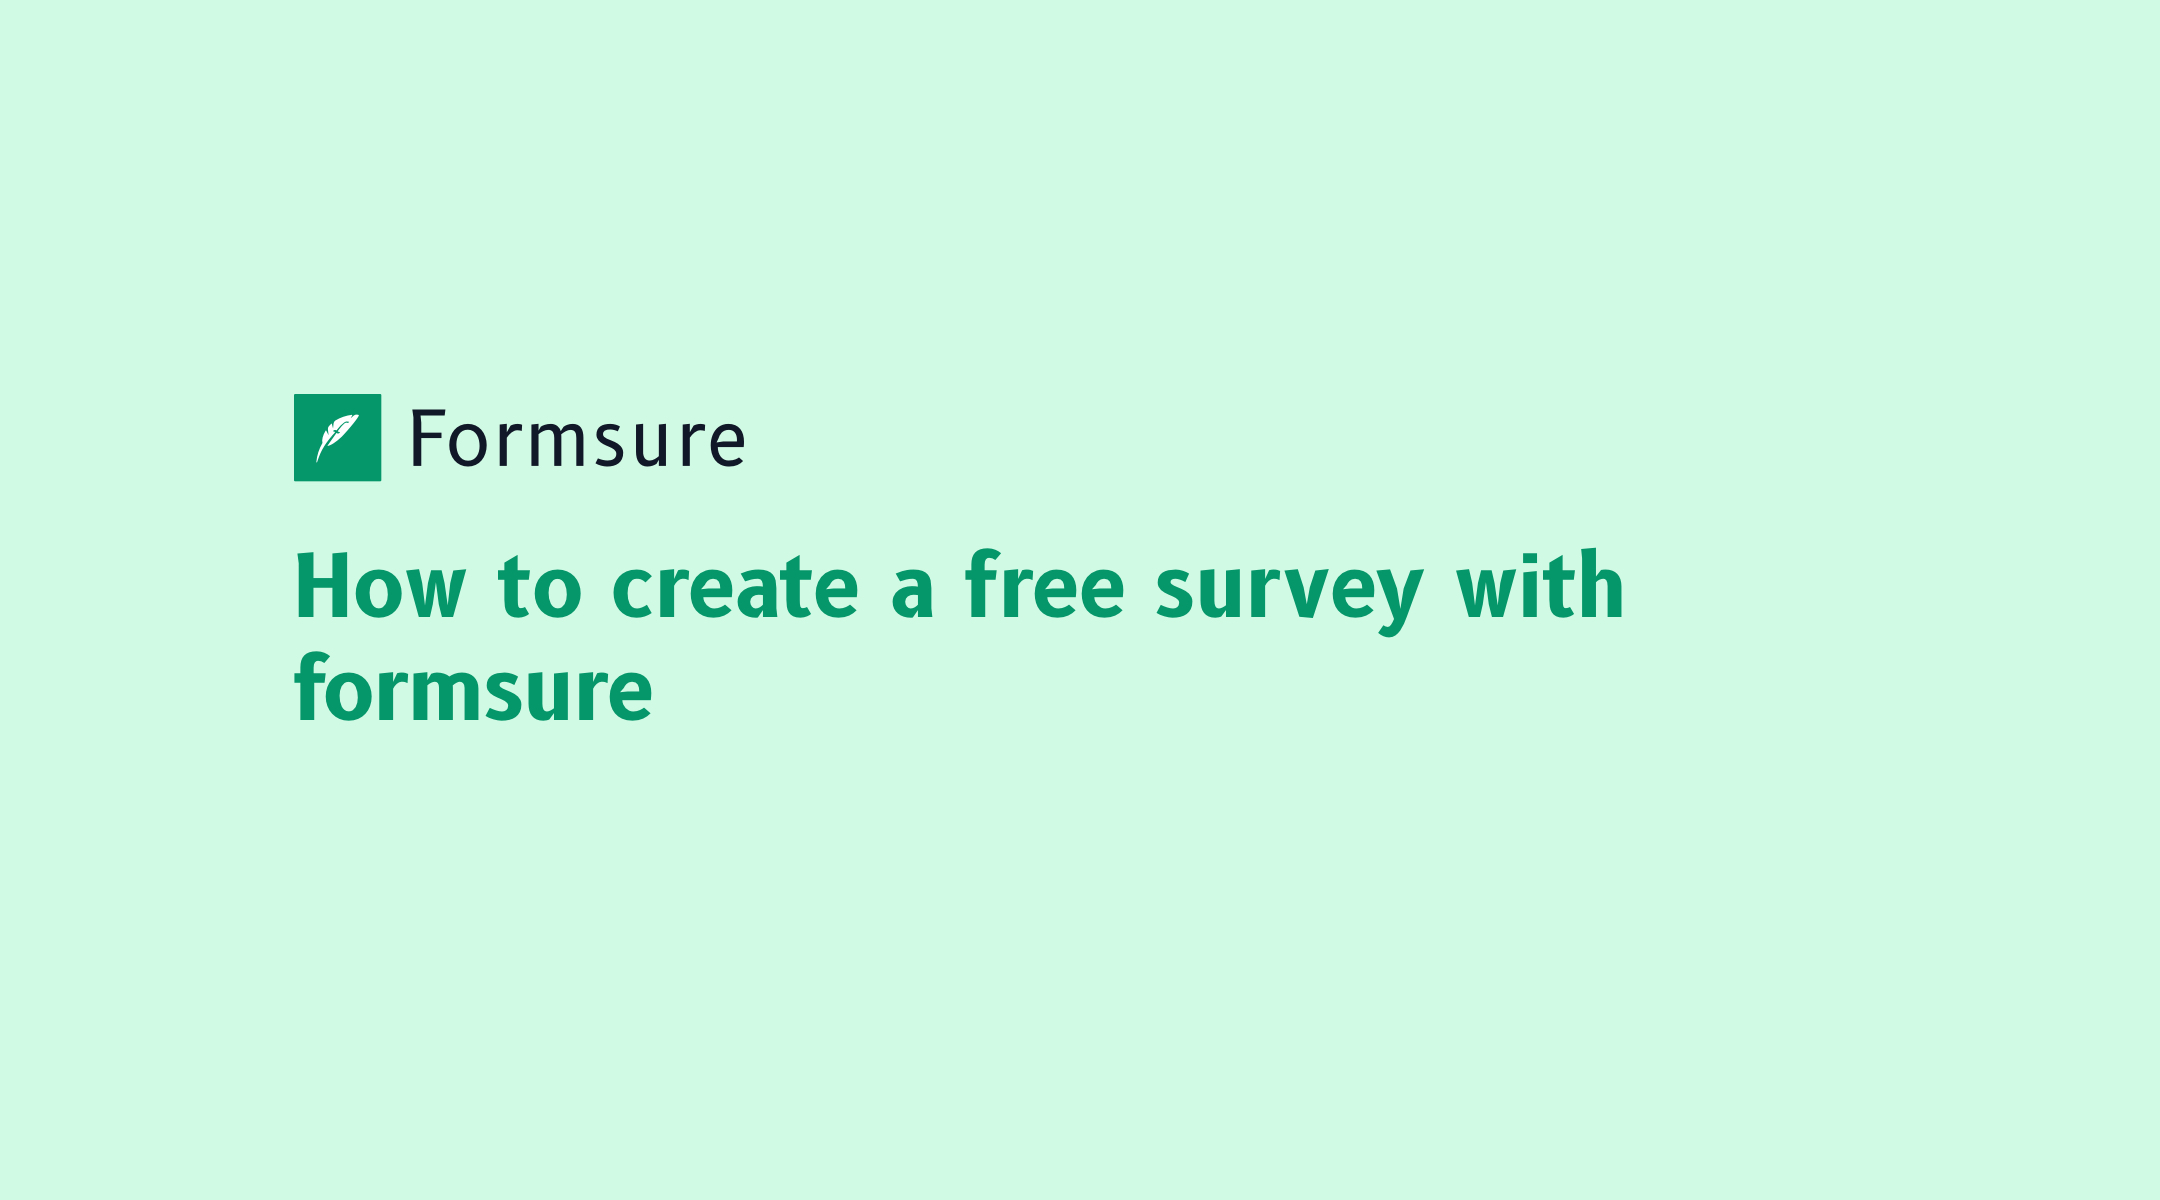 How to create a free survey with formsure - Formsure